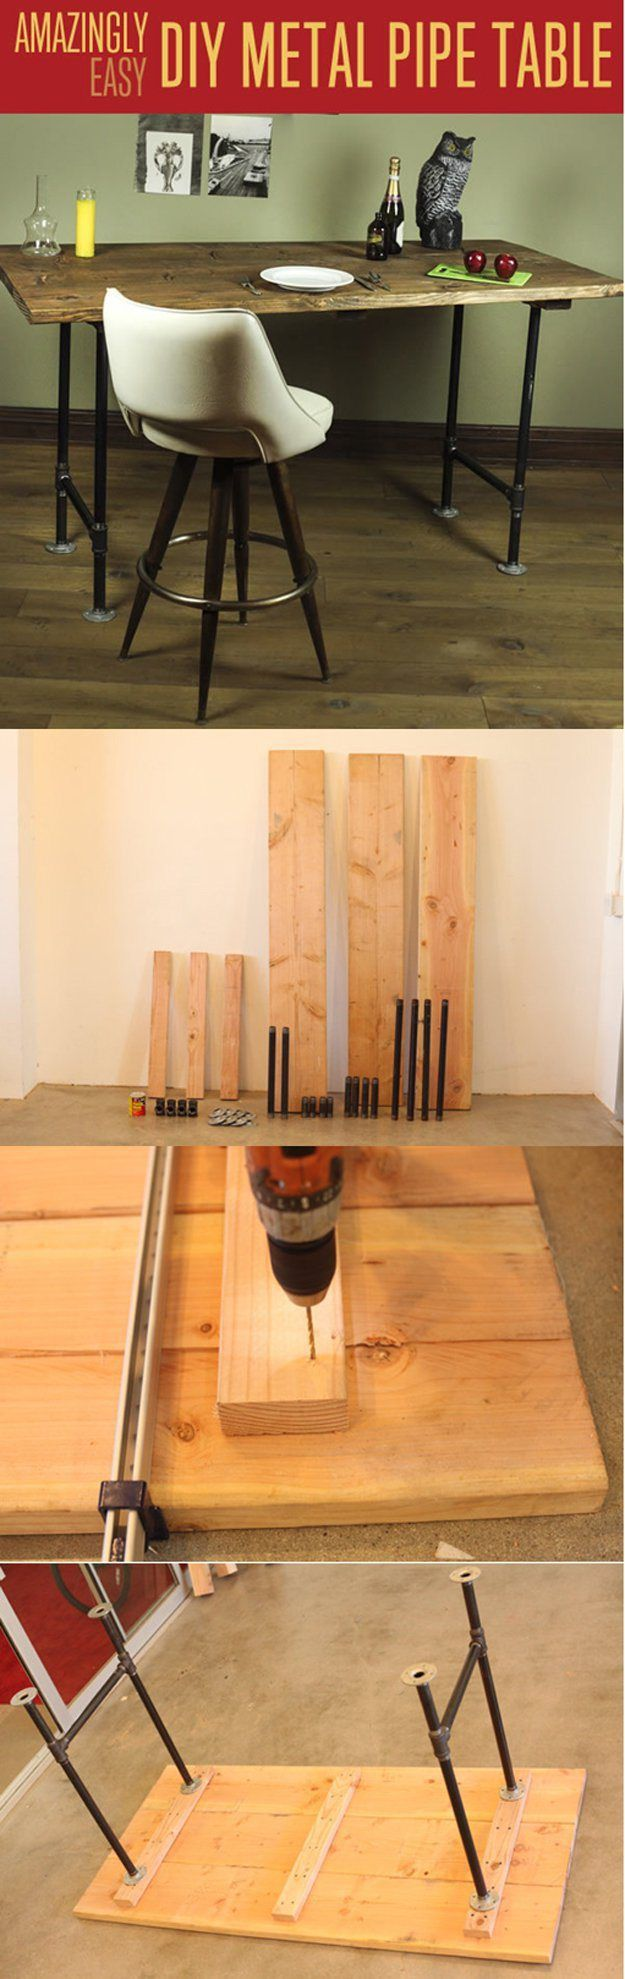 27 Easiest Woodworking Projects for Beginners. Great way to get started with DIY woodworking projects...